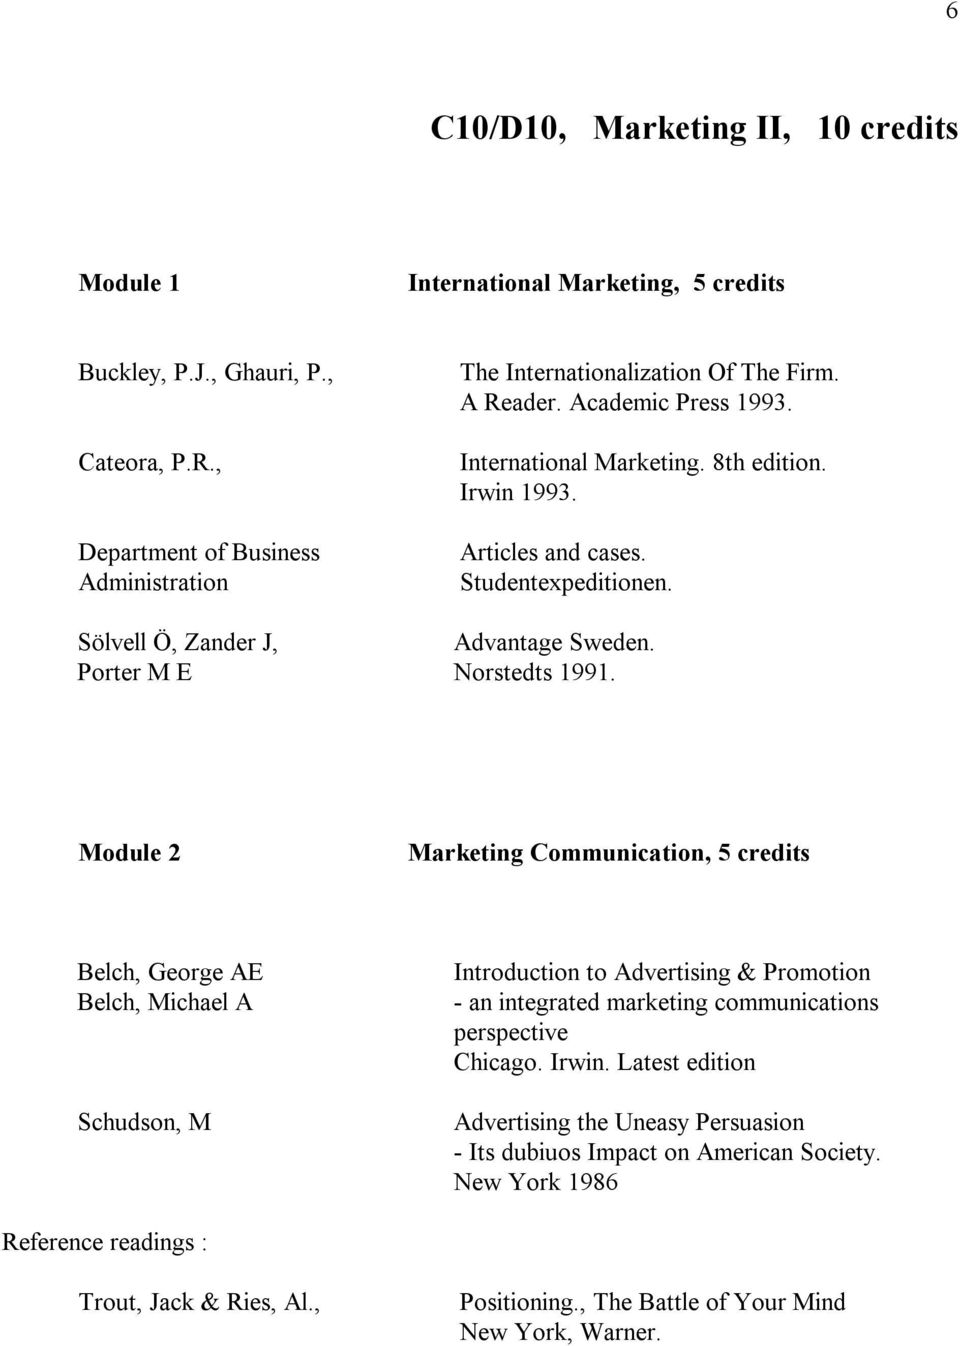 Module 2 Marketing Communication, 5 credits Belch, George AE Belch, Michael A Schudson, M Introduction to Advertising & Promotion - an integrated marketing communications perspective Chicago. Irwin.